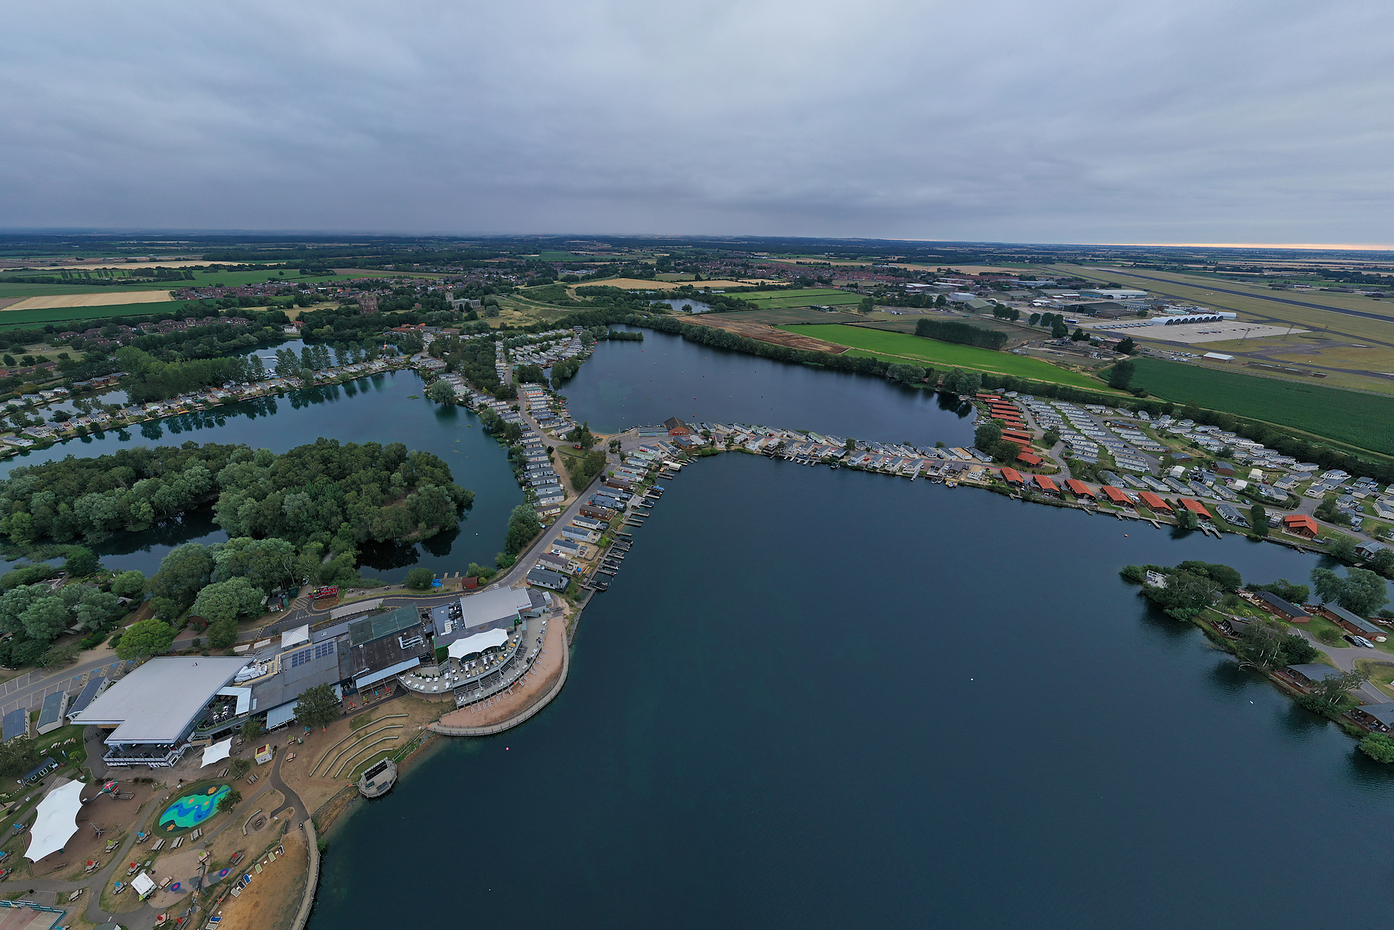 Aearial view of Tattershall Lakes.